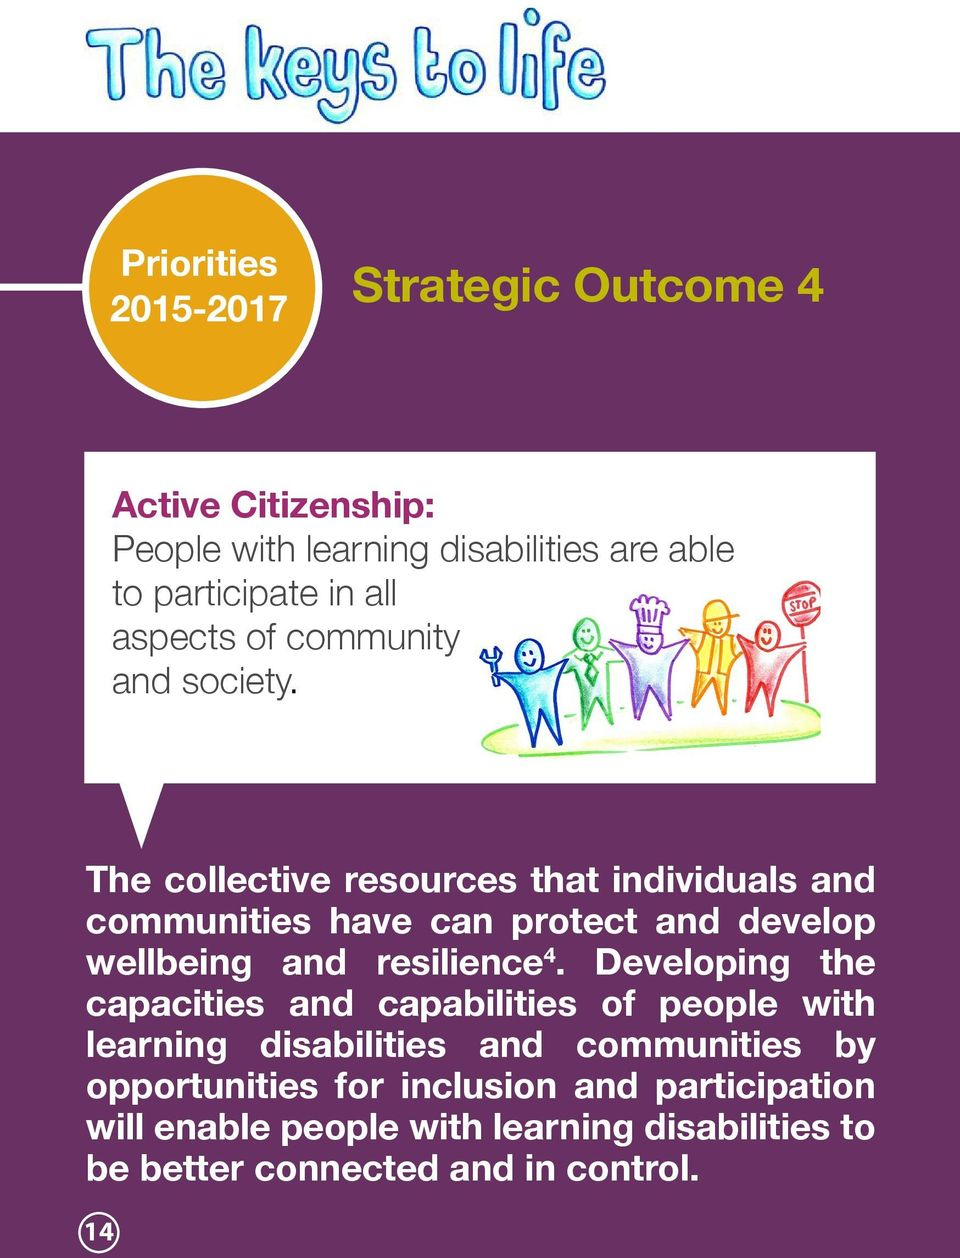 The collective resources that individuals and communities have can protect and develop wellbeing and resilience 4.